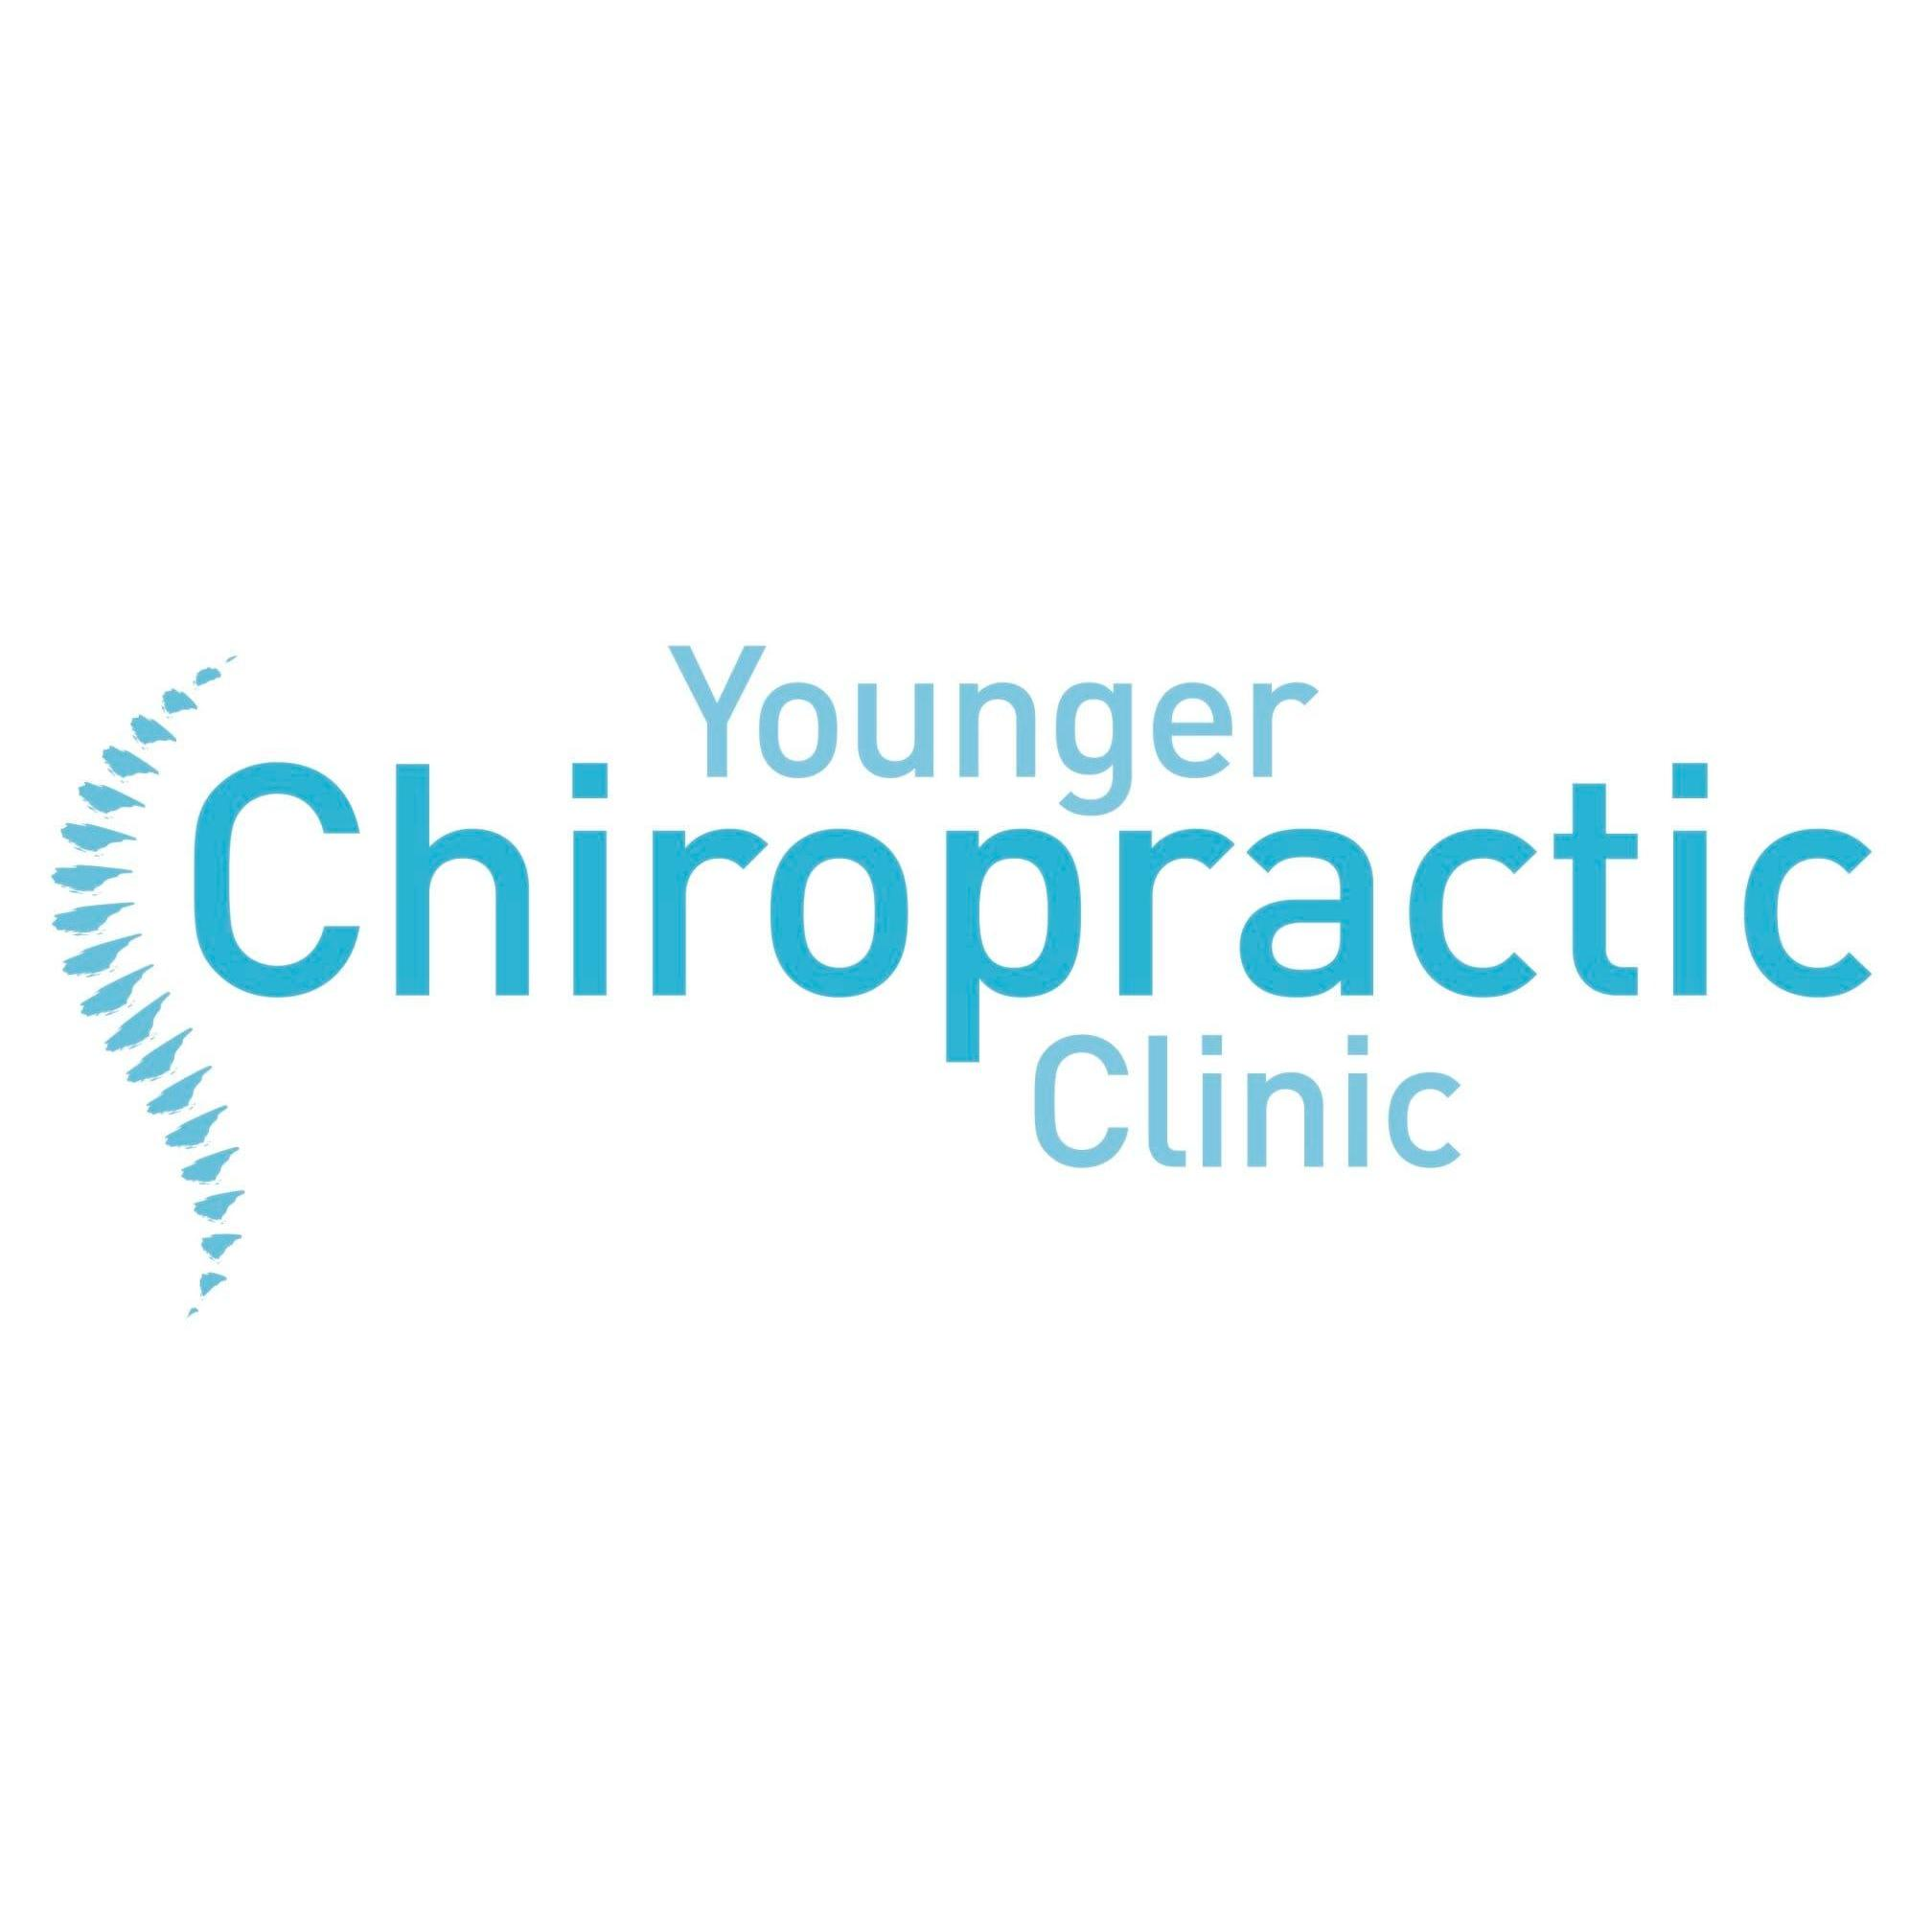 Younger Chiropractic Clinic - Wirral, Merseyside CH61 3UE - 01516 487878 | ShowMeLocal.com